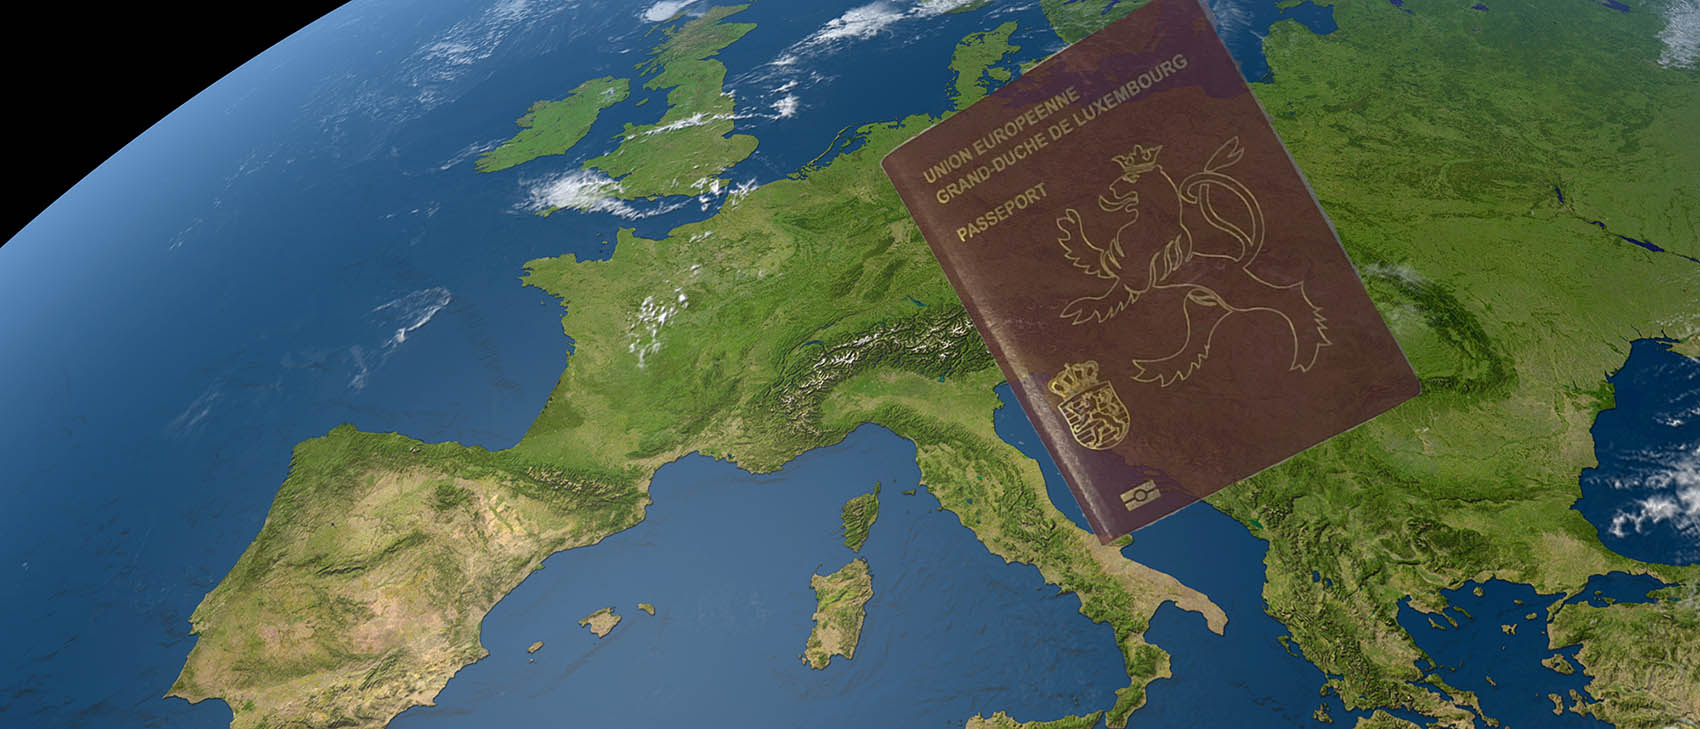 Luxembourg Passport World's Most Valuable, USA 35th